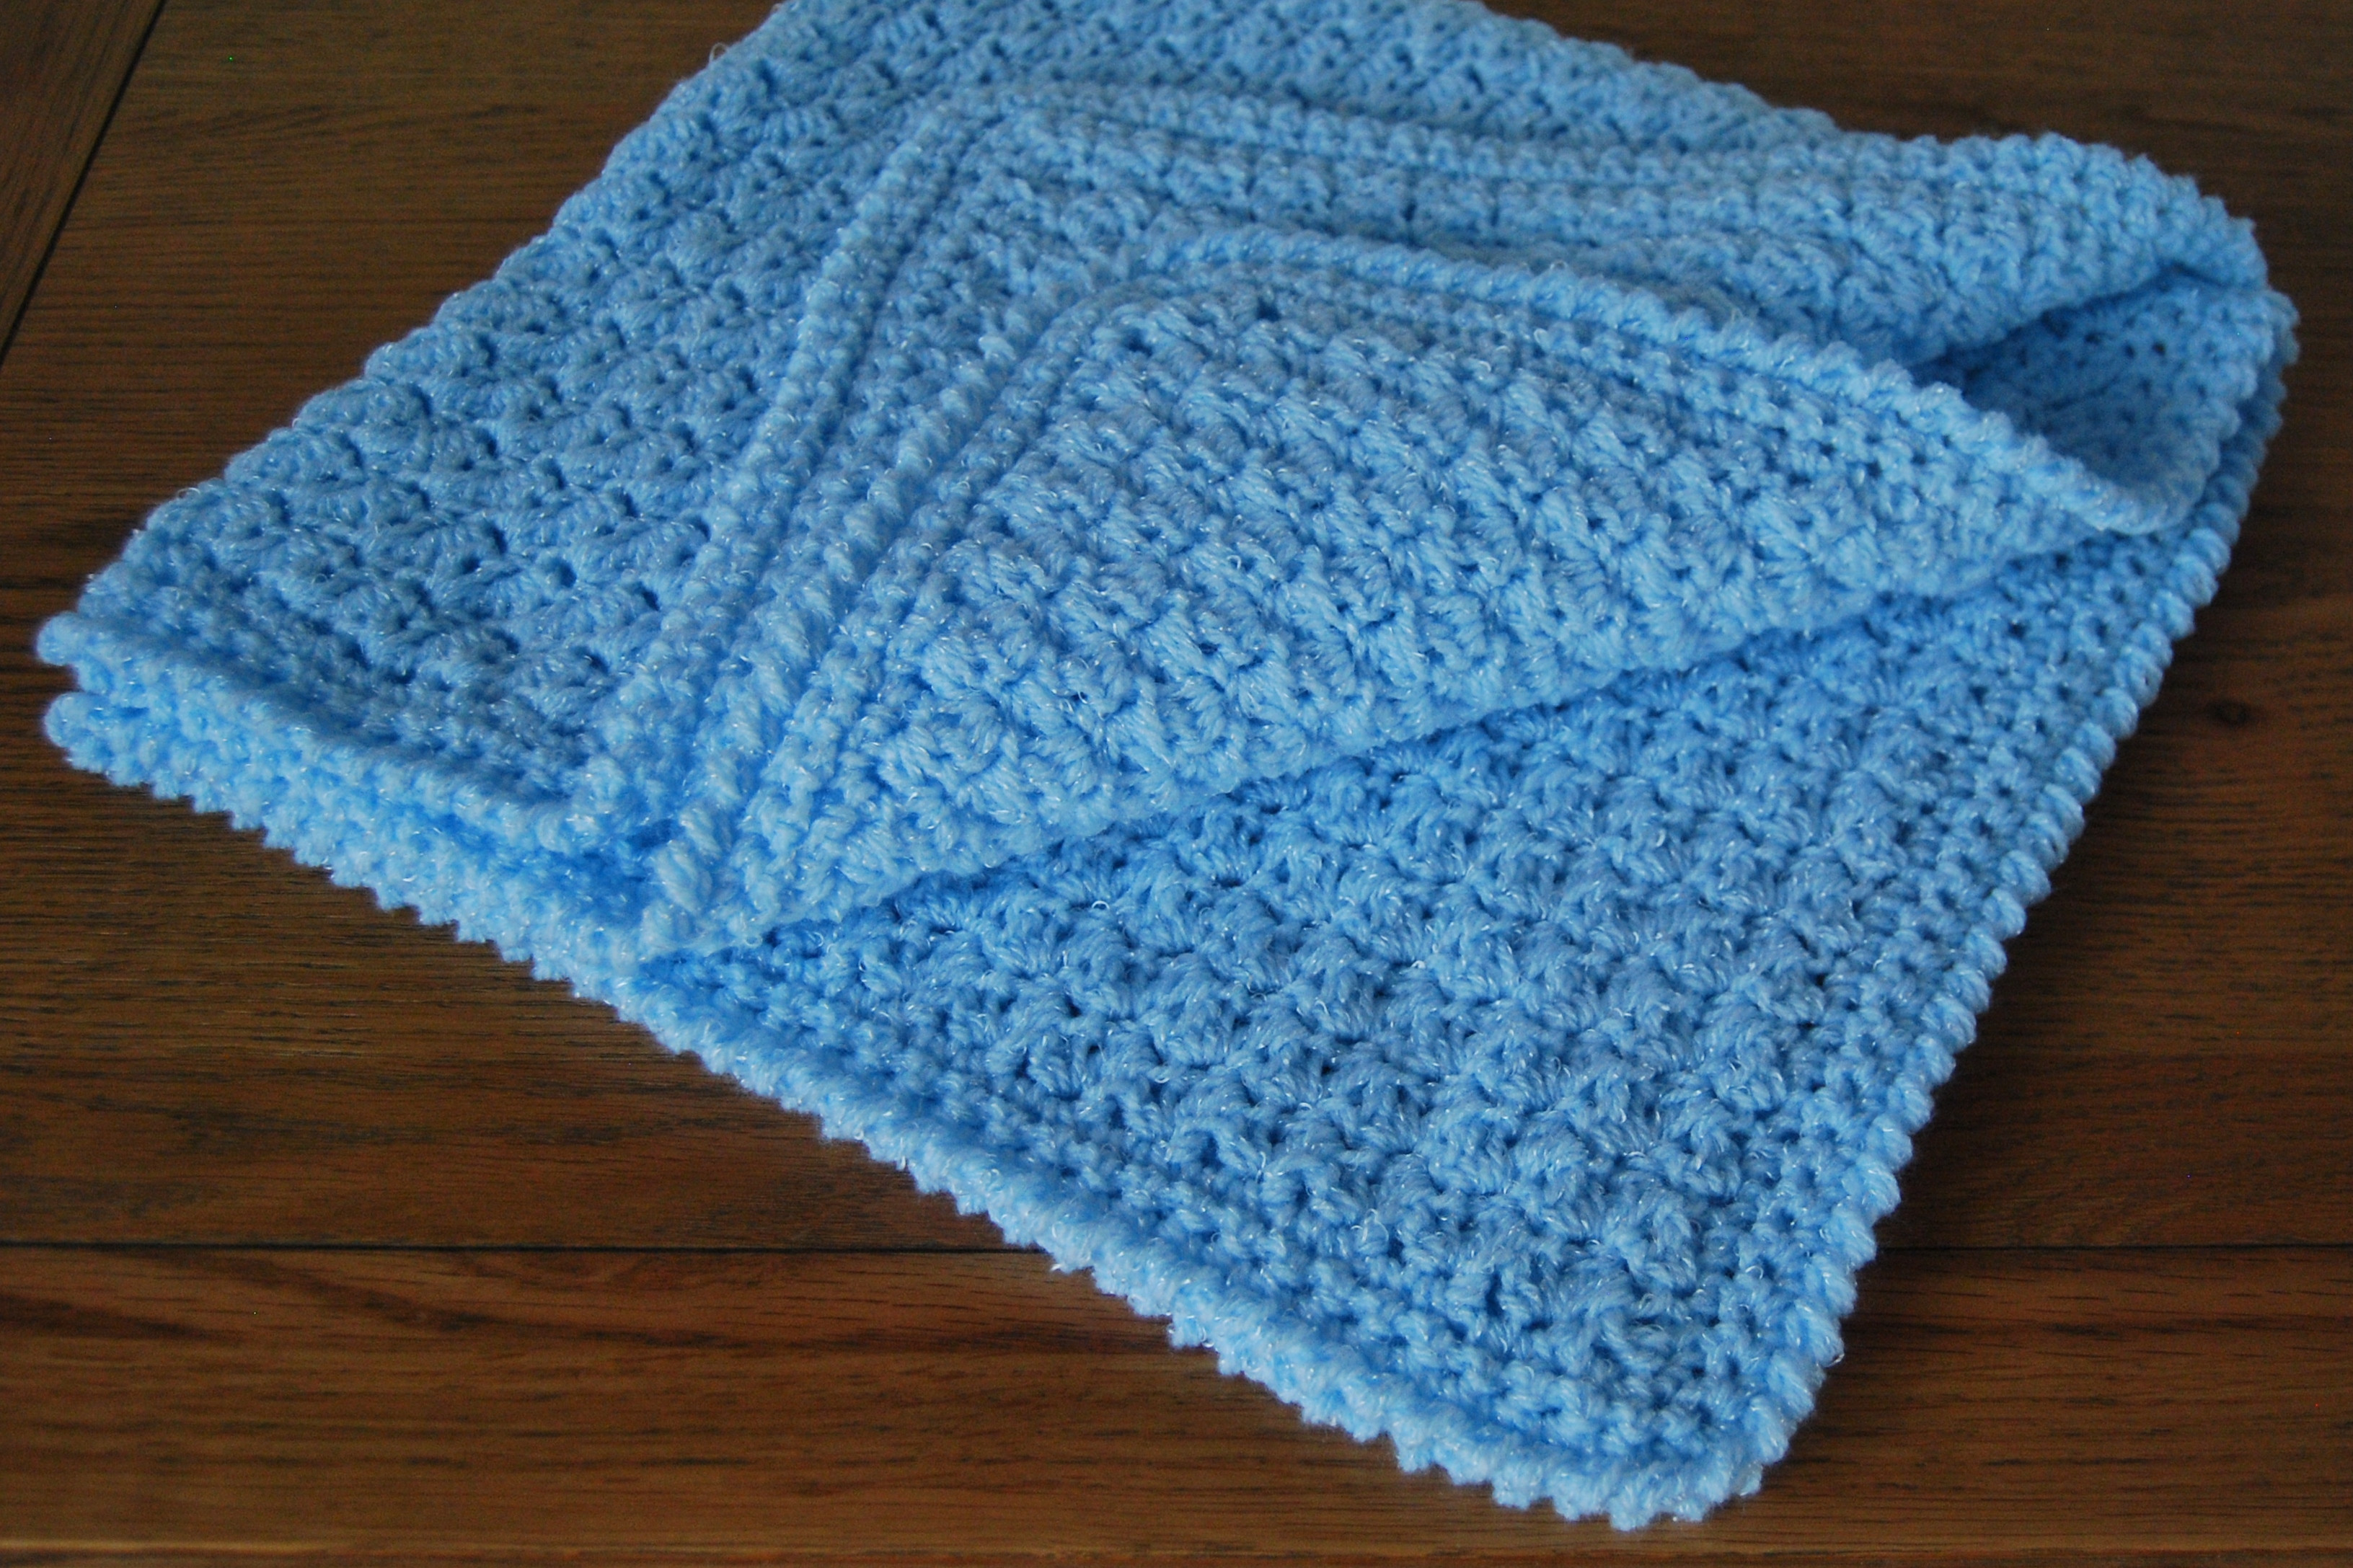 Baby Boy Crochet Blanket Patterns New Beautiful Baby Boy Blanket Crochet Pattern for Pram Of Baby Boy Crochet Blanket Patterns Lovely Navy and Teal for A Baby Boy